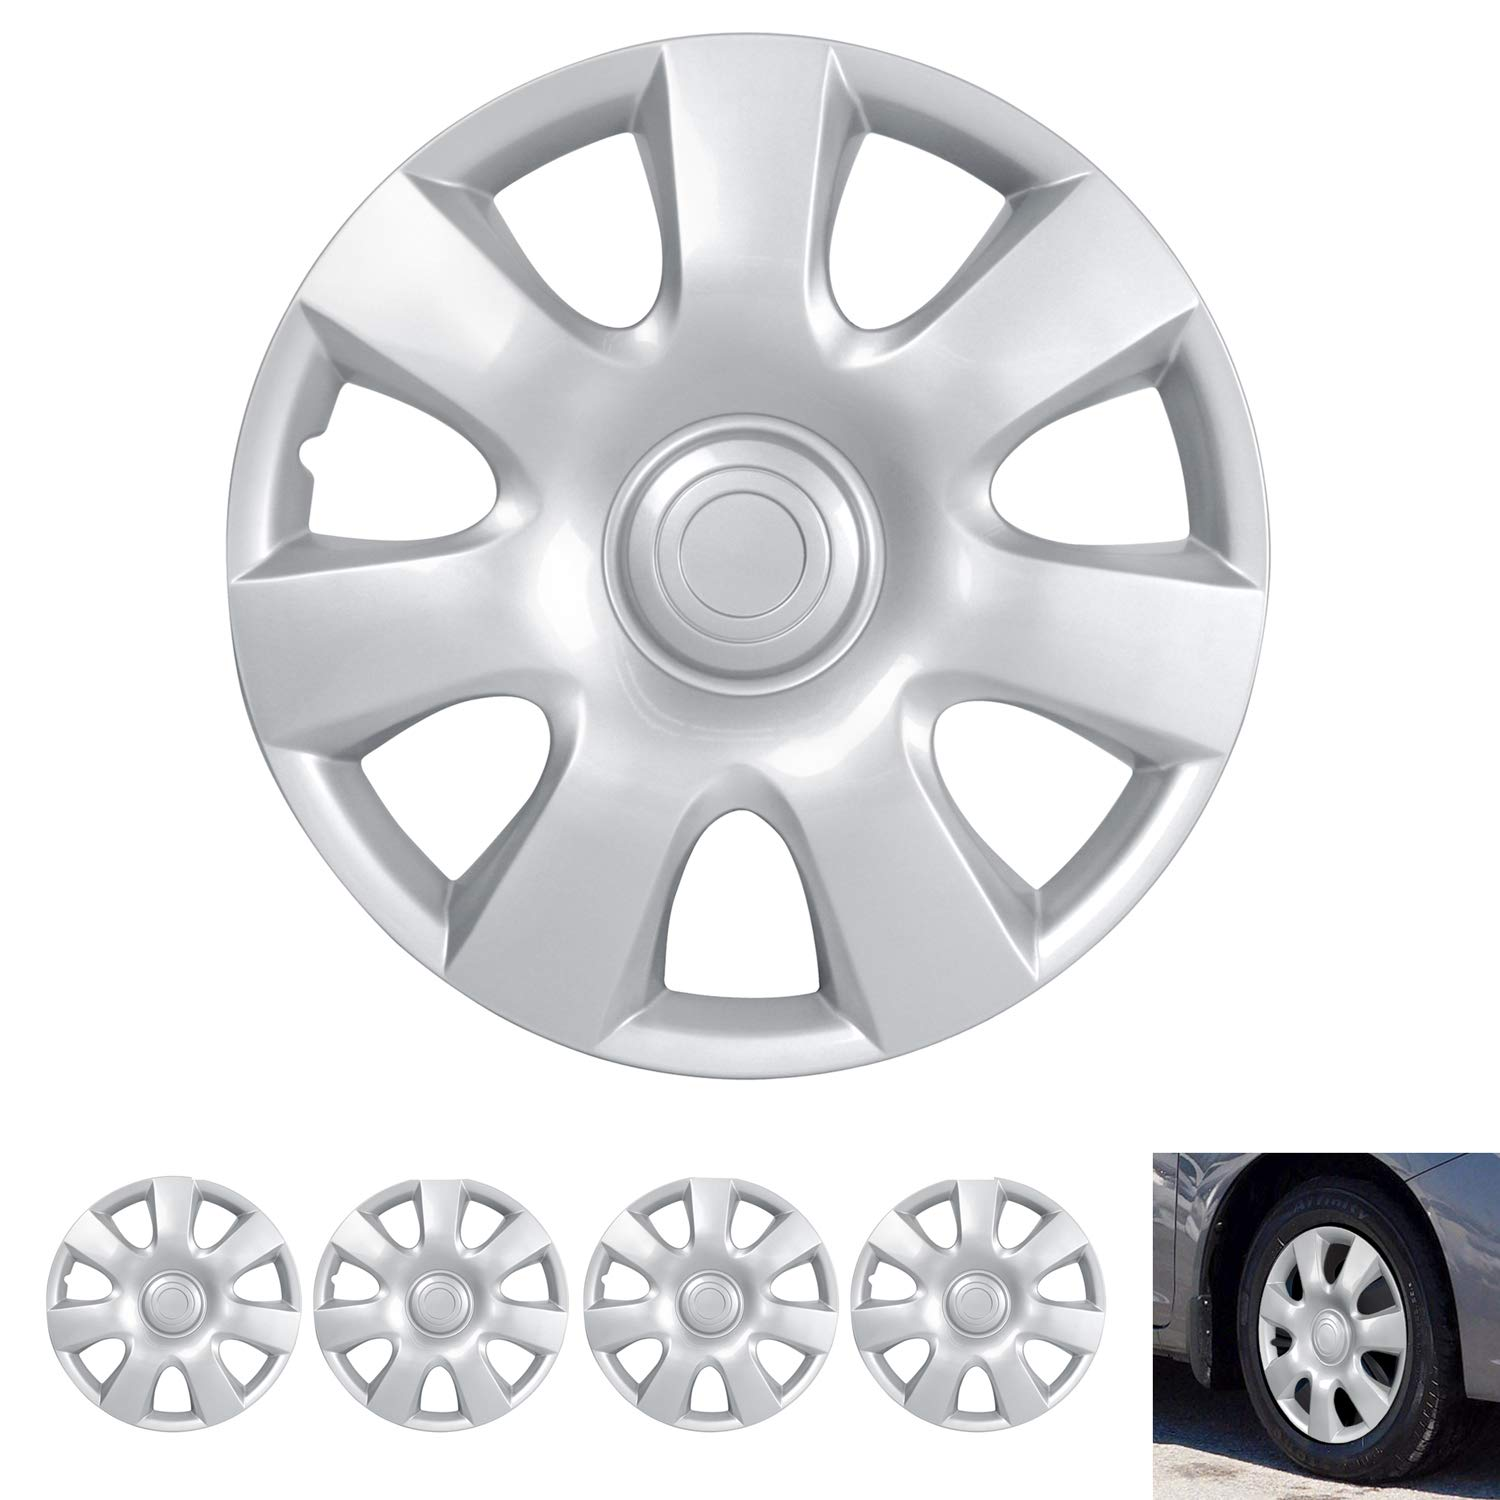 """4 Pack Hubcaps for Car Accessories Wheel Covers Snap Clip-On Auto Tire Rim Replacement for 15 inch Wheels 15/"""" Hub Caps Triangular Spokes BDK Wheel Guards"""